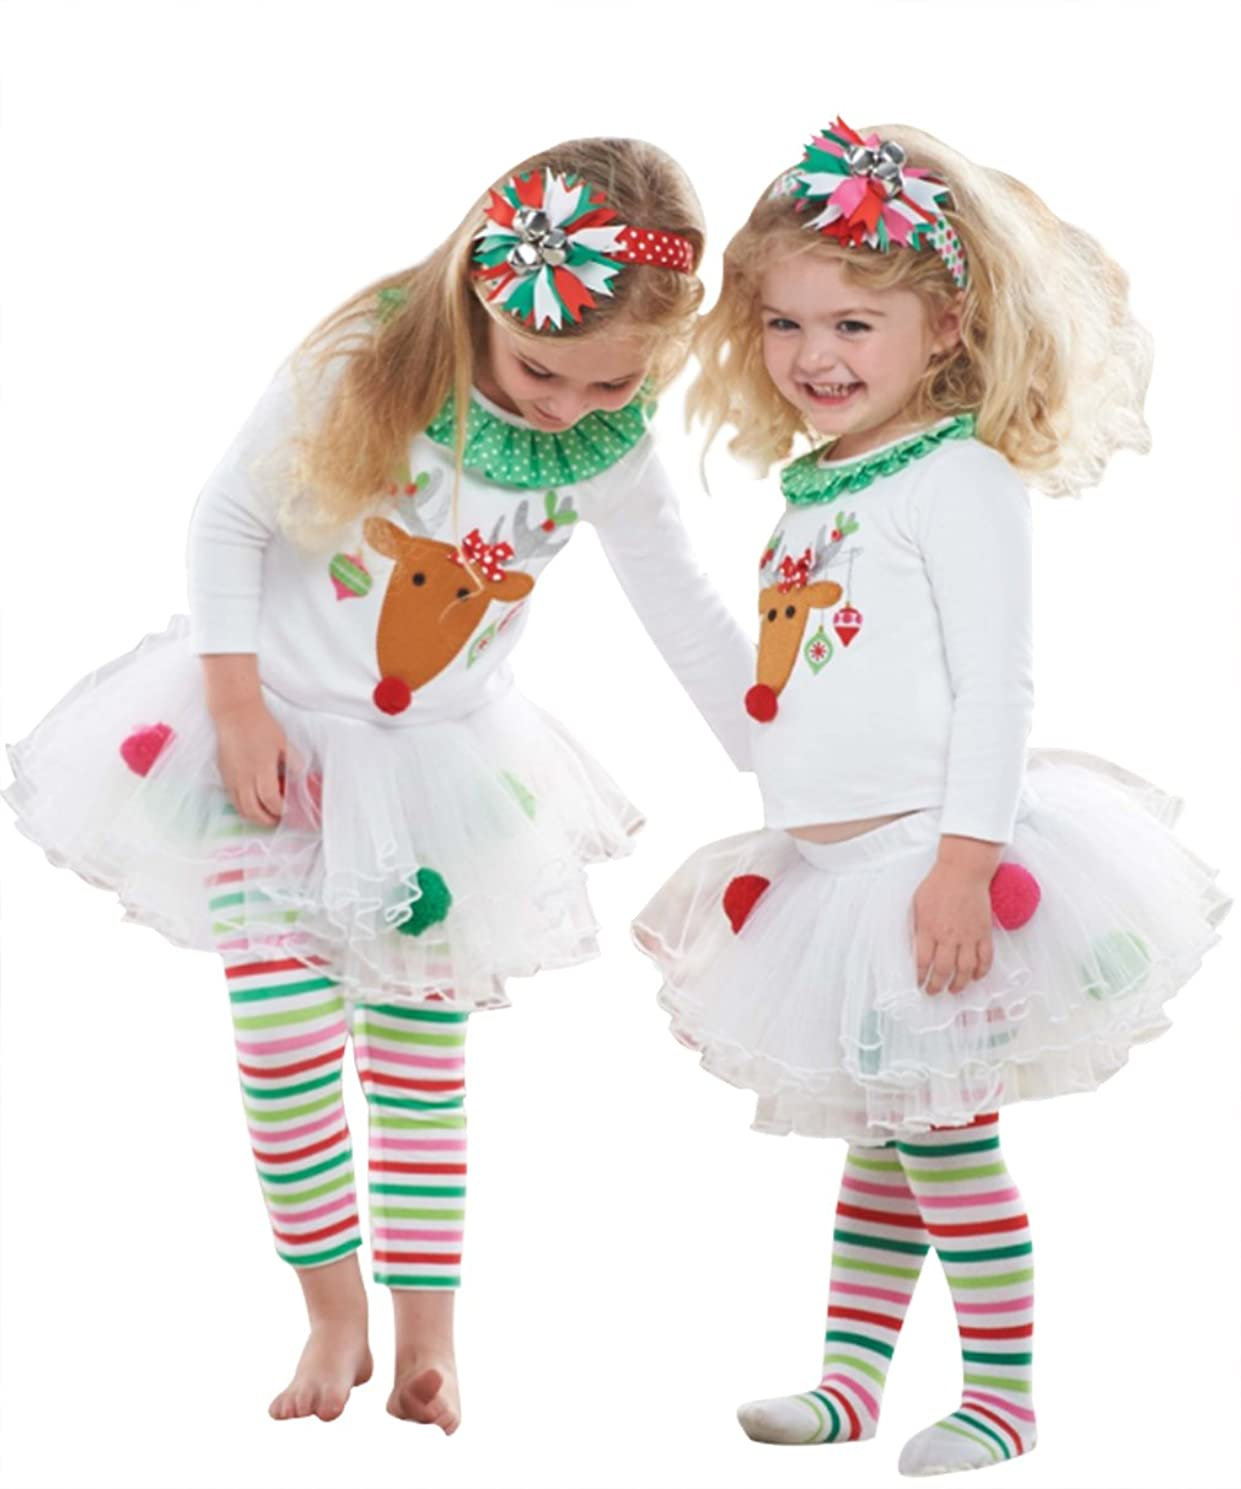 2Pcs Kids Baby Girls Christmas Deer Print T-shirt Tops+Striped Tulle Skirts Pants Clothes Outfits